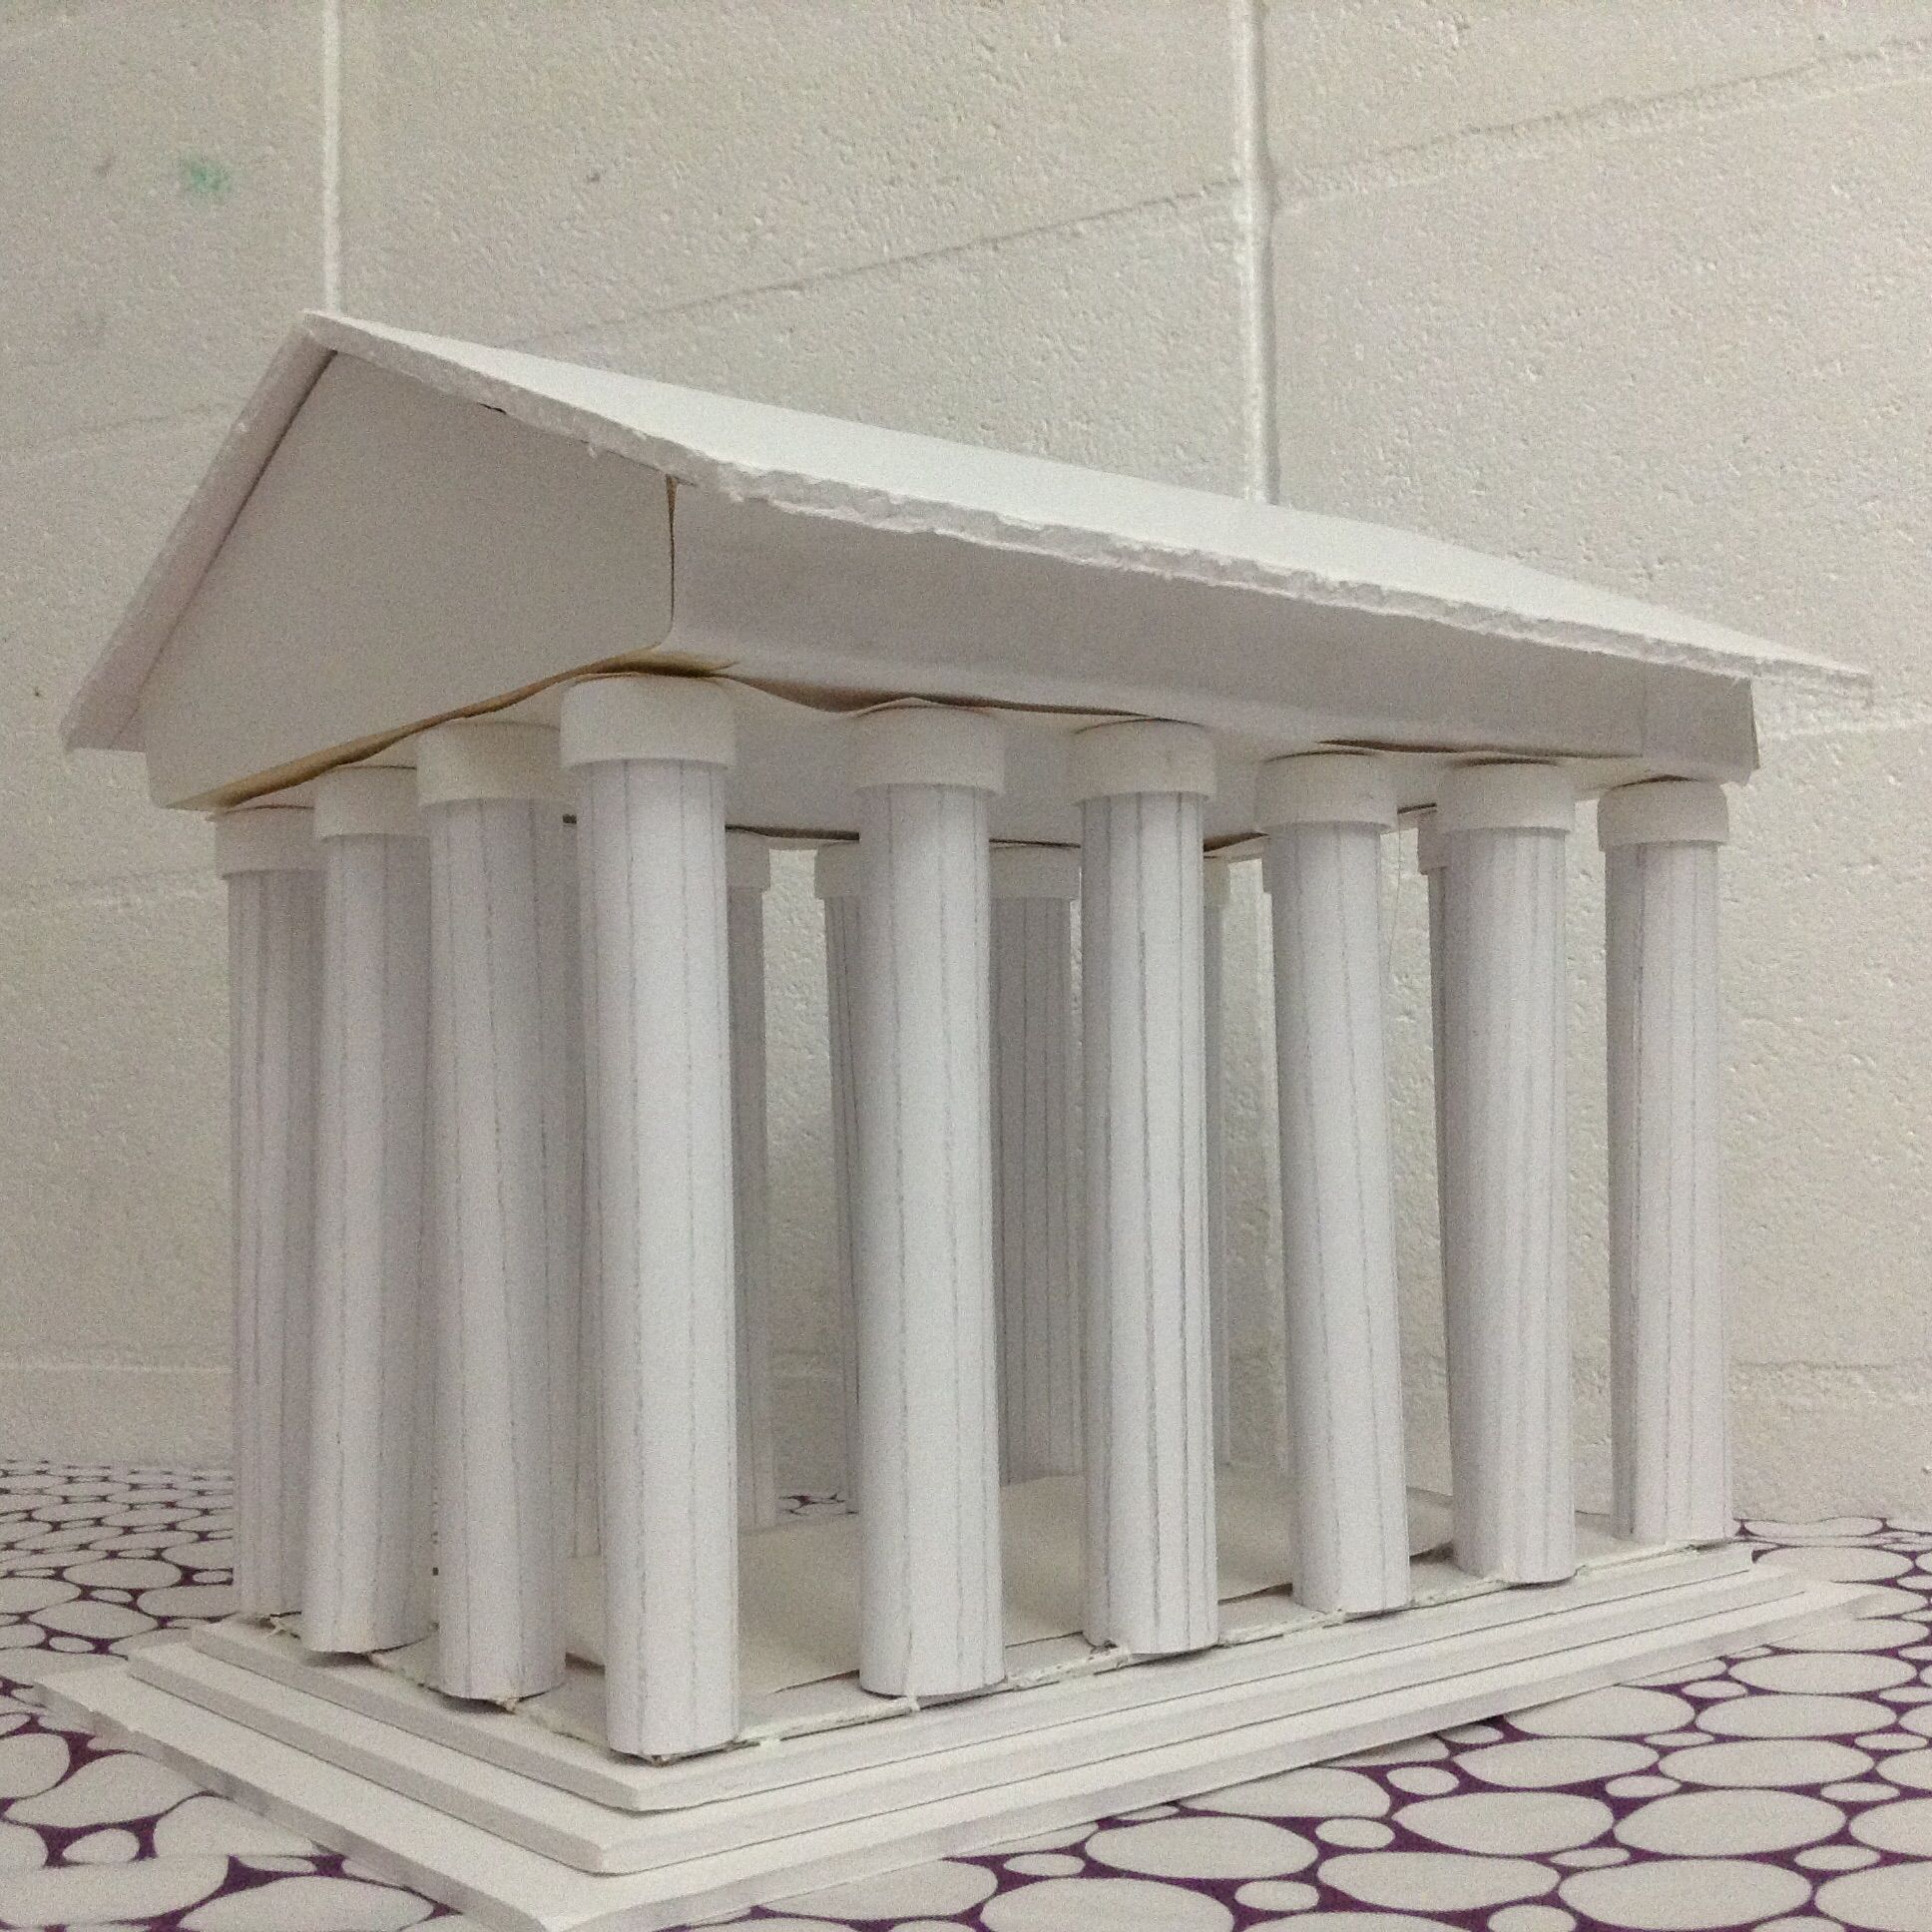 b036a7aacb9decf2a17ff7540aec6130 6th grade project parthenon parthenon project pinterest school